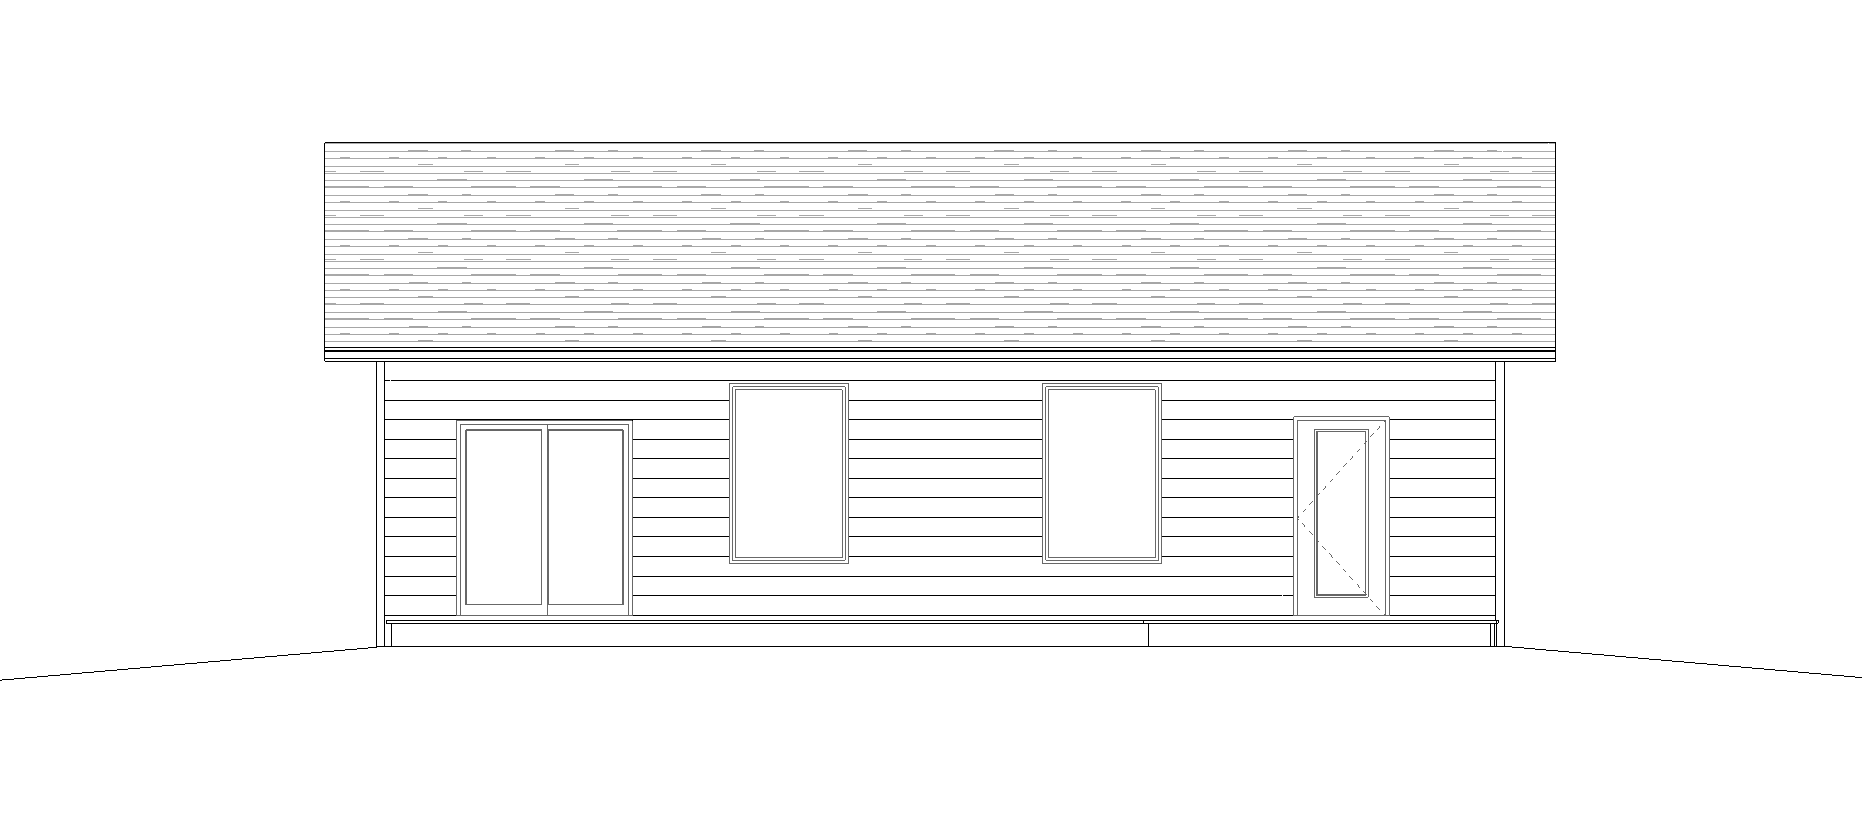 Penner Homes Elevation Map Id: 403